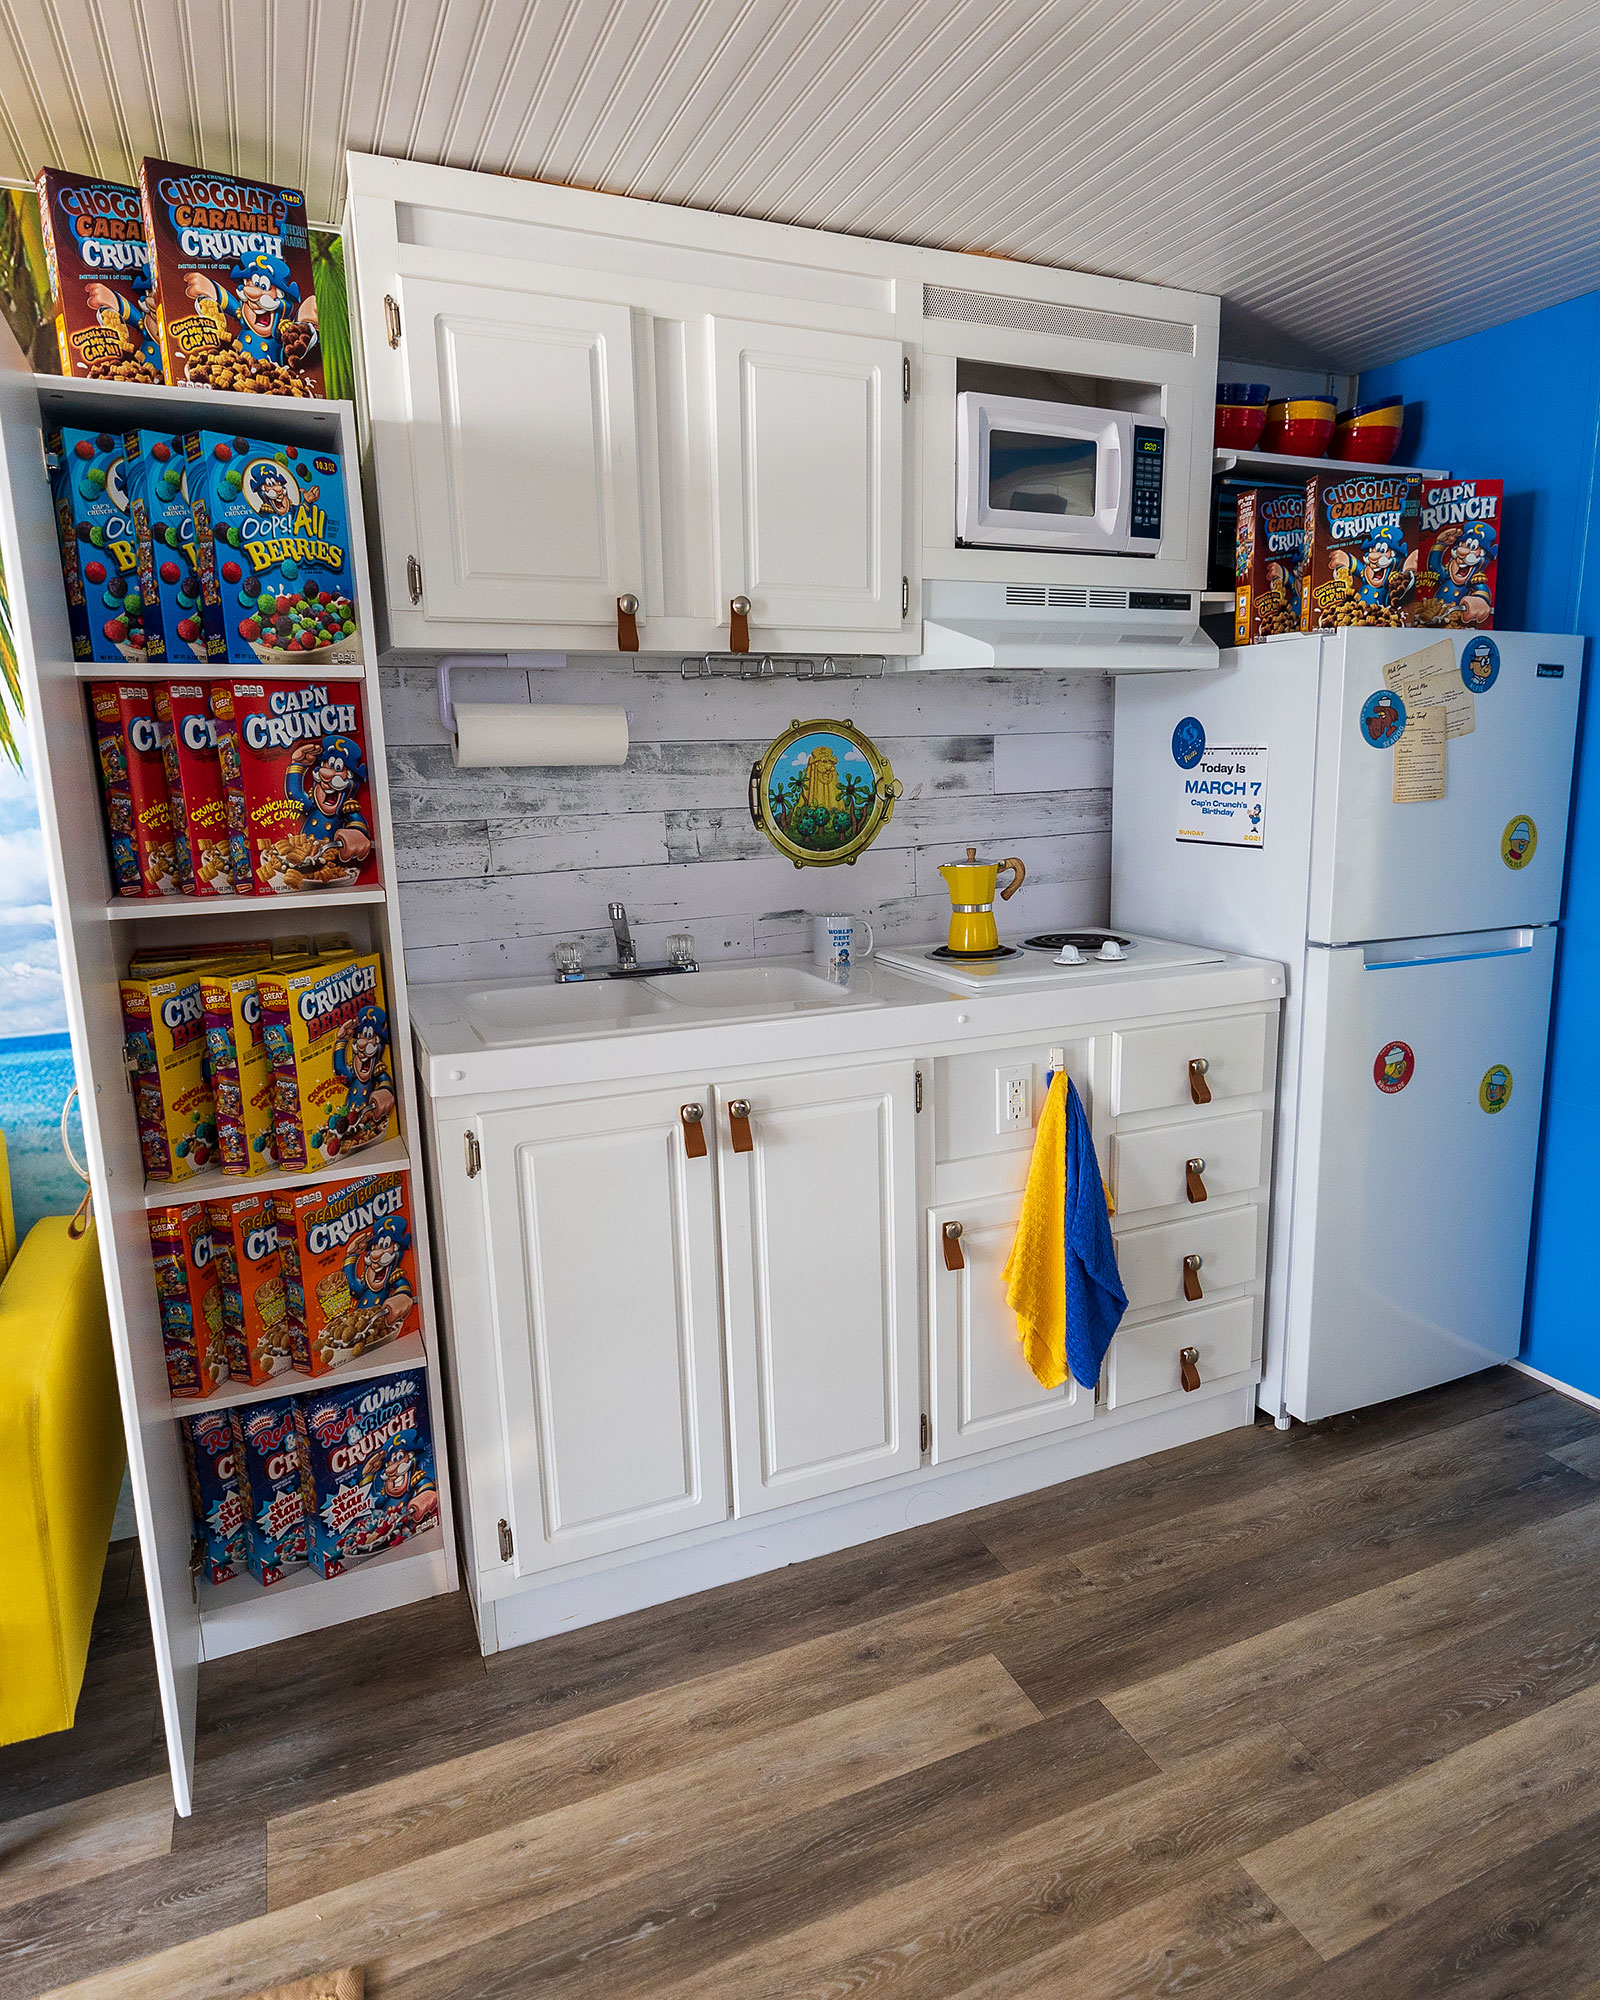 The kitchen in the Cap'n's Quarters